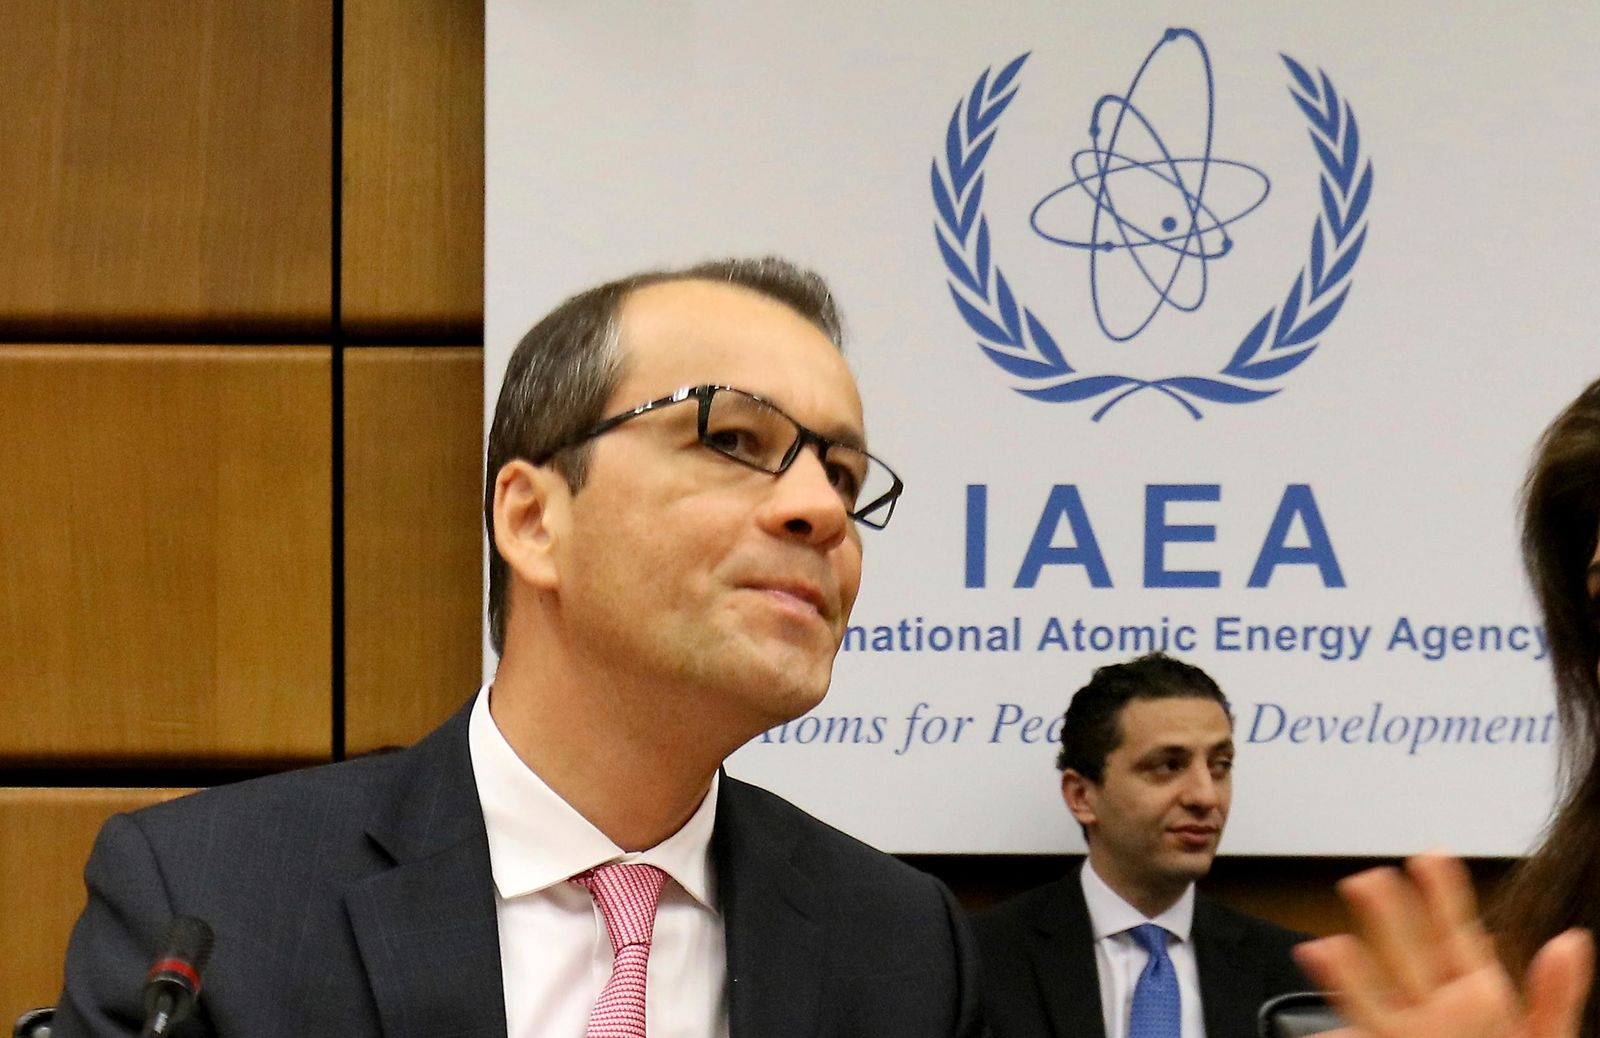 Acting Director General of the International Atomic Energy Agency, IAEA, Cornel Feruta from Romania waits for the start of the IAEA board of governors meeting at the International Center in Vienna, Austria, Thursday, Aug. 1, 2019. (AP Photo/Ronald Zak)